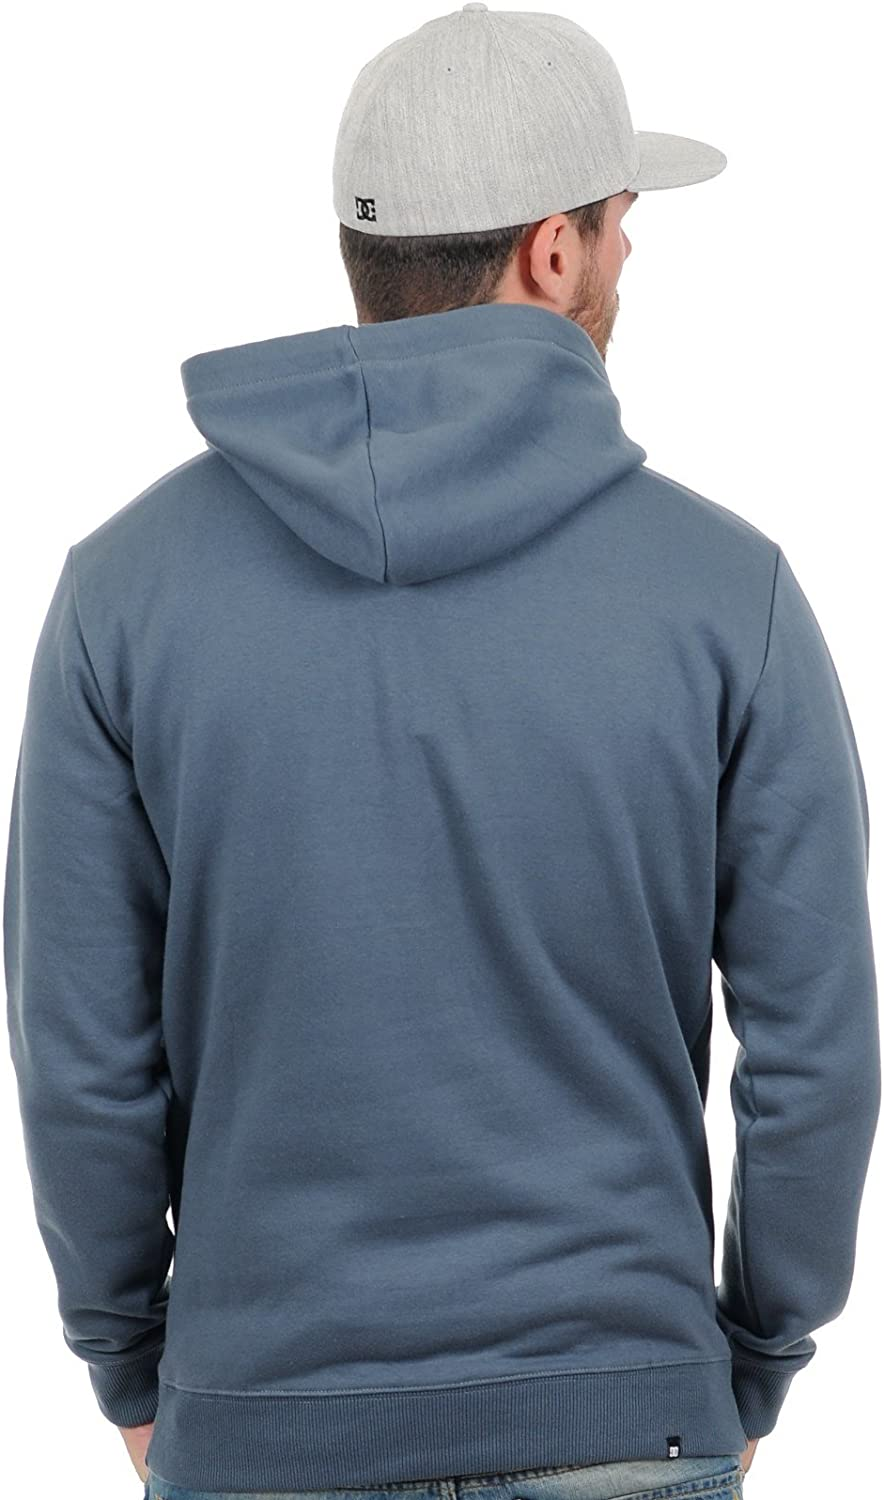 DC Shoes Herren Sweatshirt Star PH, EDYSF03001 Orion Blue